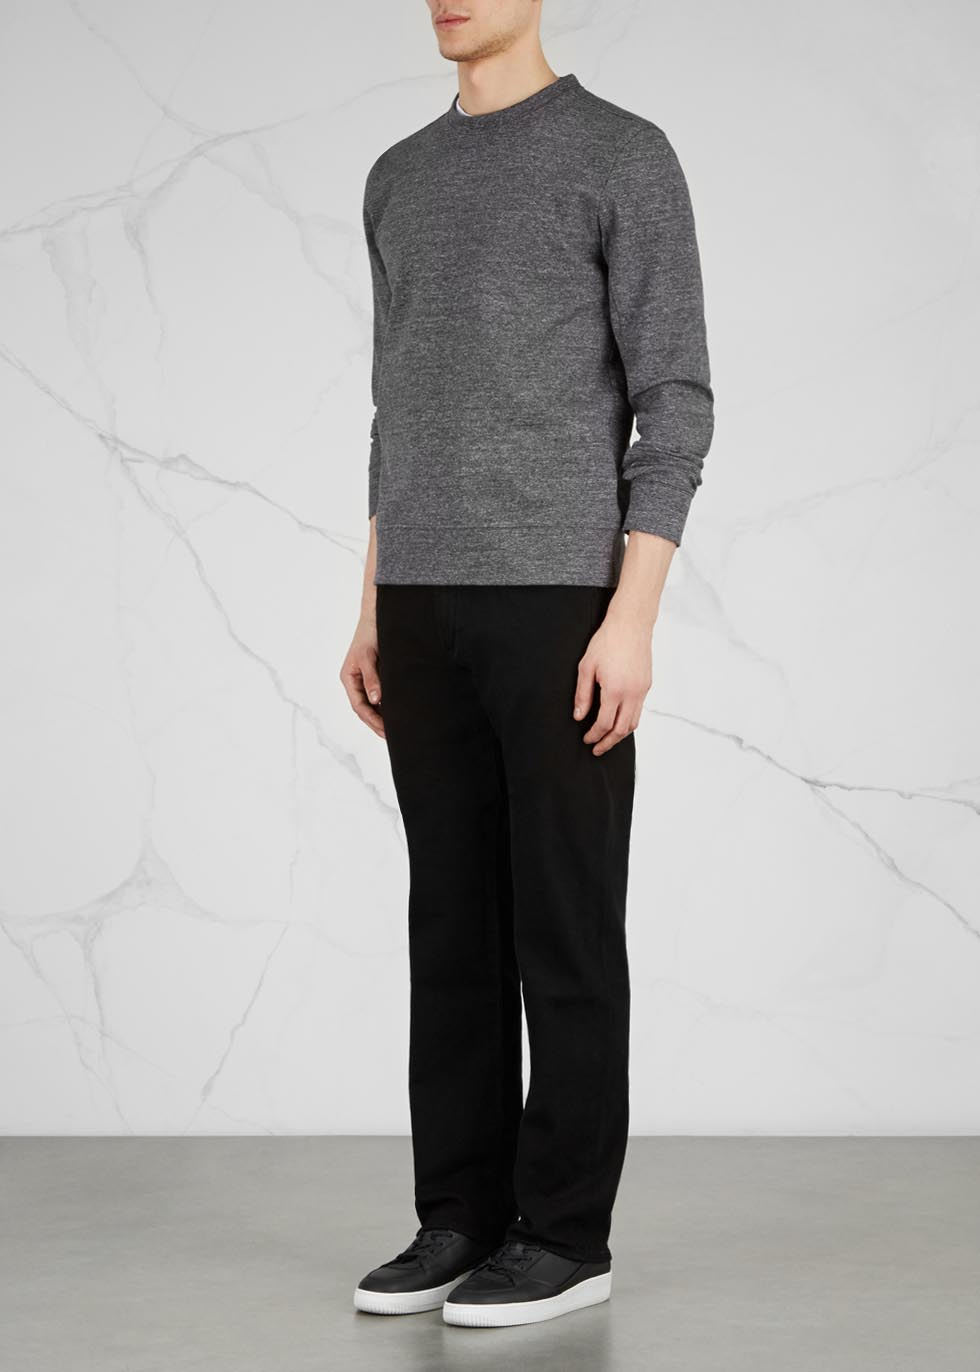 Sid black straight-leg jeans - Citizens of Humanity